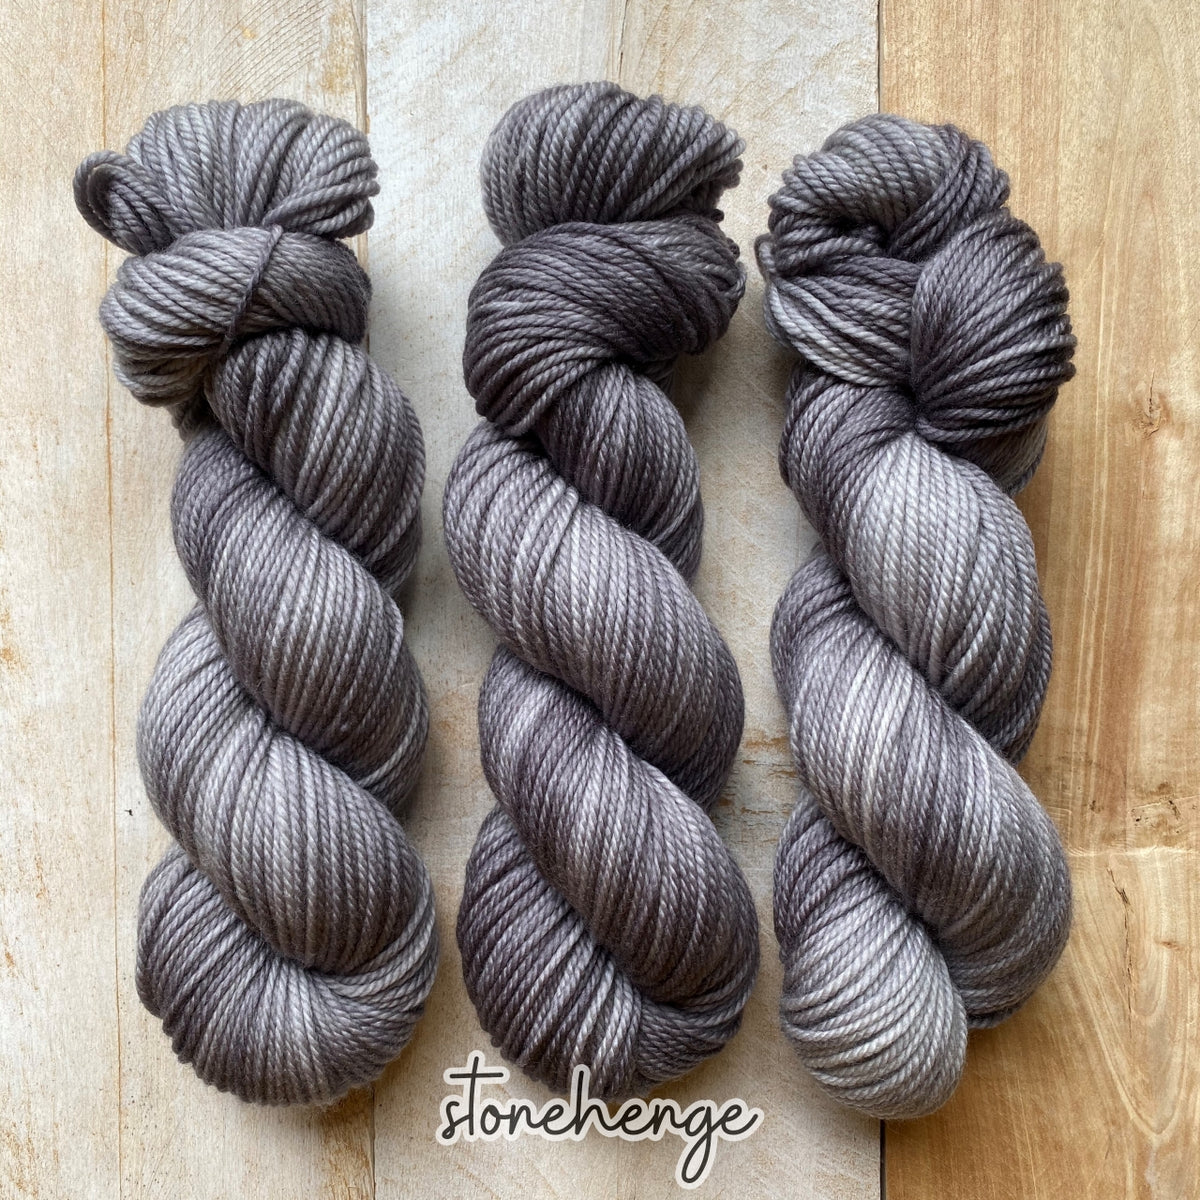 STONEHENGE by Louise Robert Design | MERINO WORSTED hand-dyed semi-solid yarn